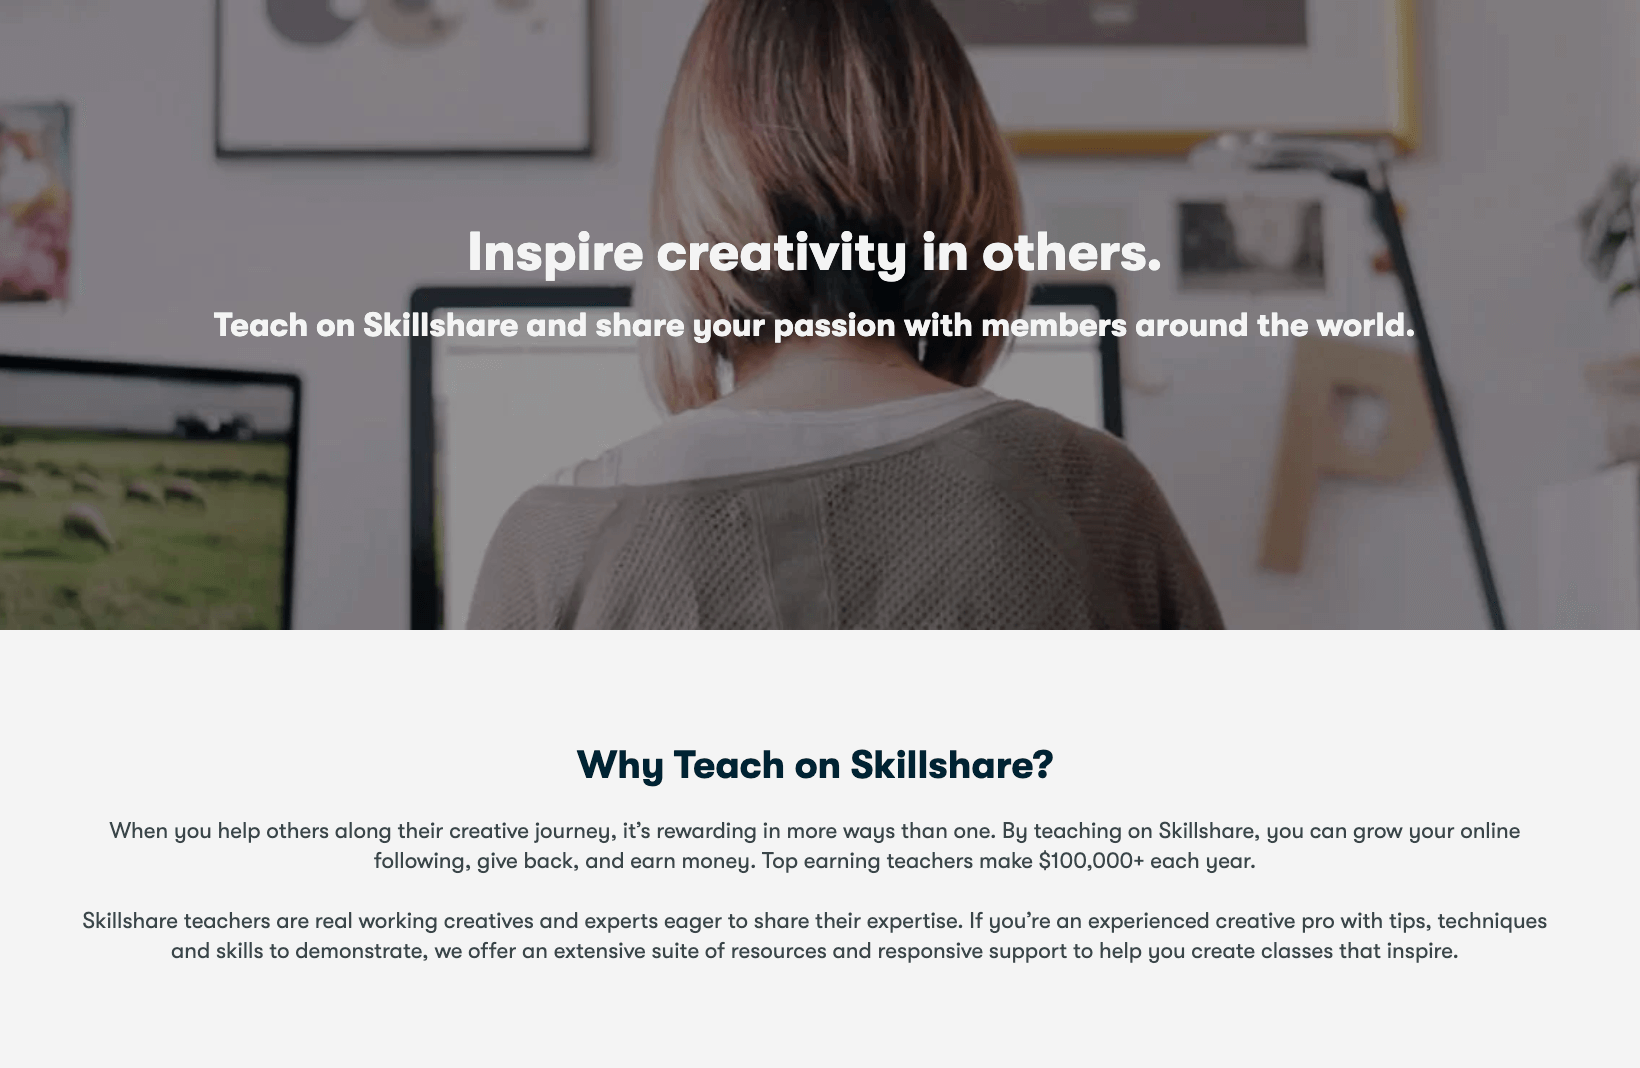 Teach on Skillshare and earn money from online courses - passive income